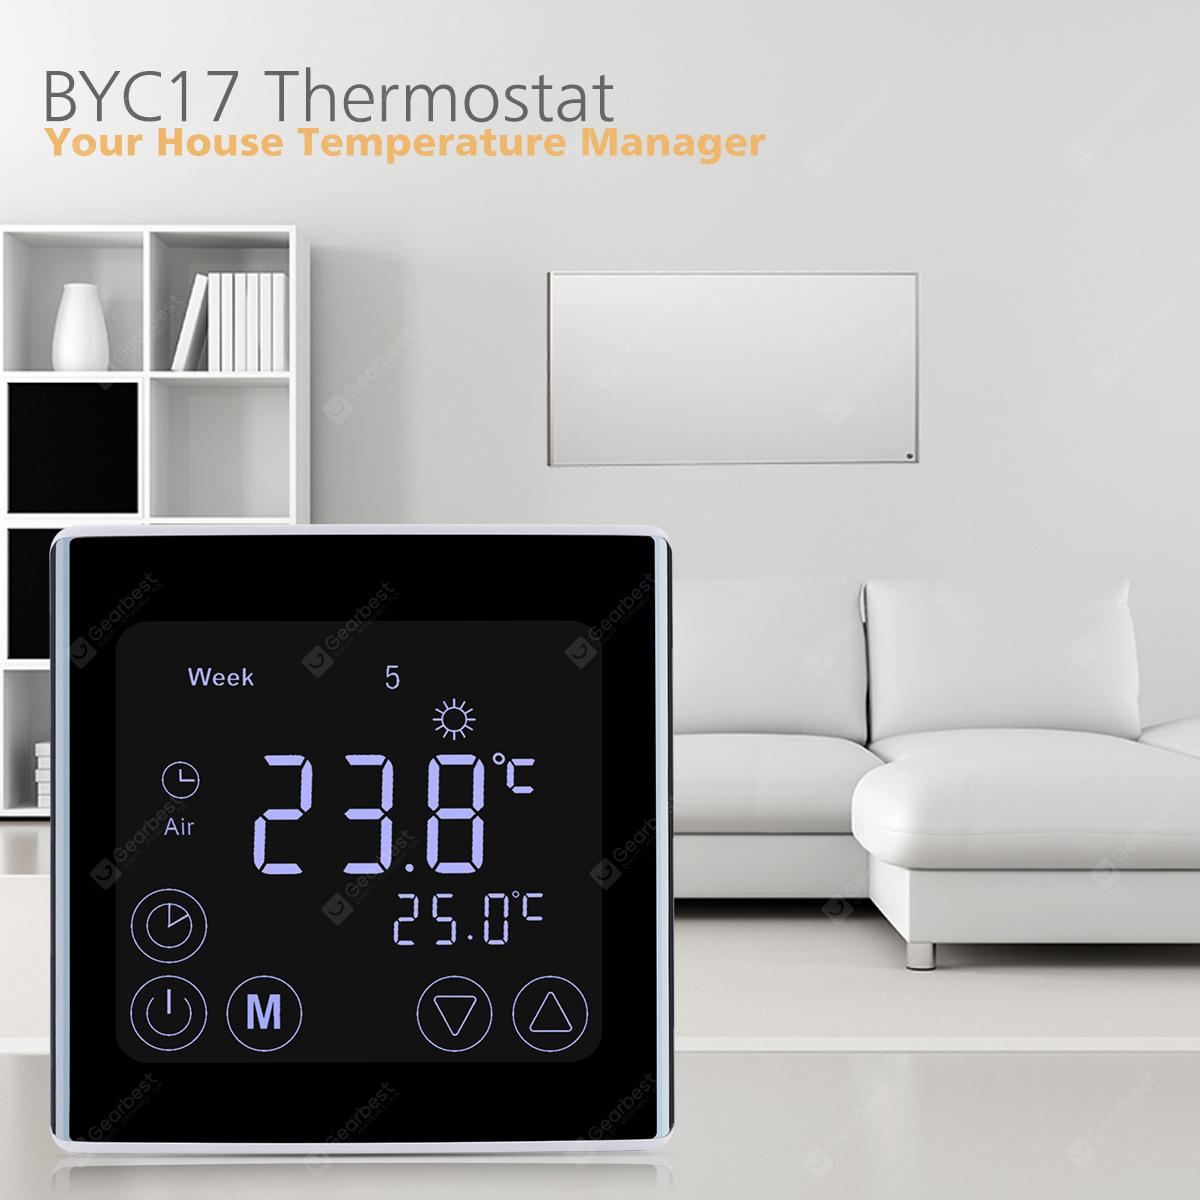 Floureon C17.GH3 Touch Control LCD Display Thermostat - Black